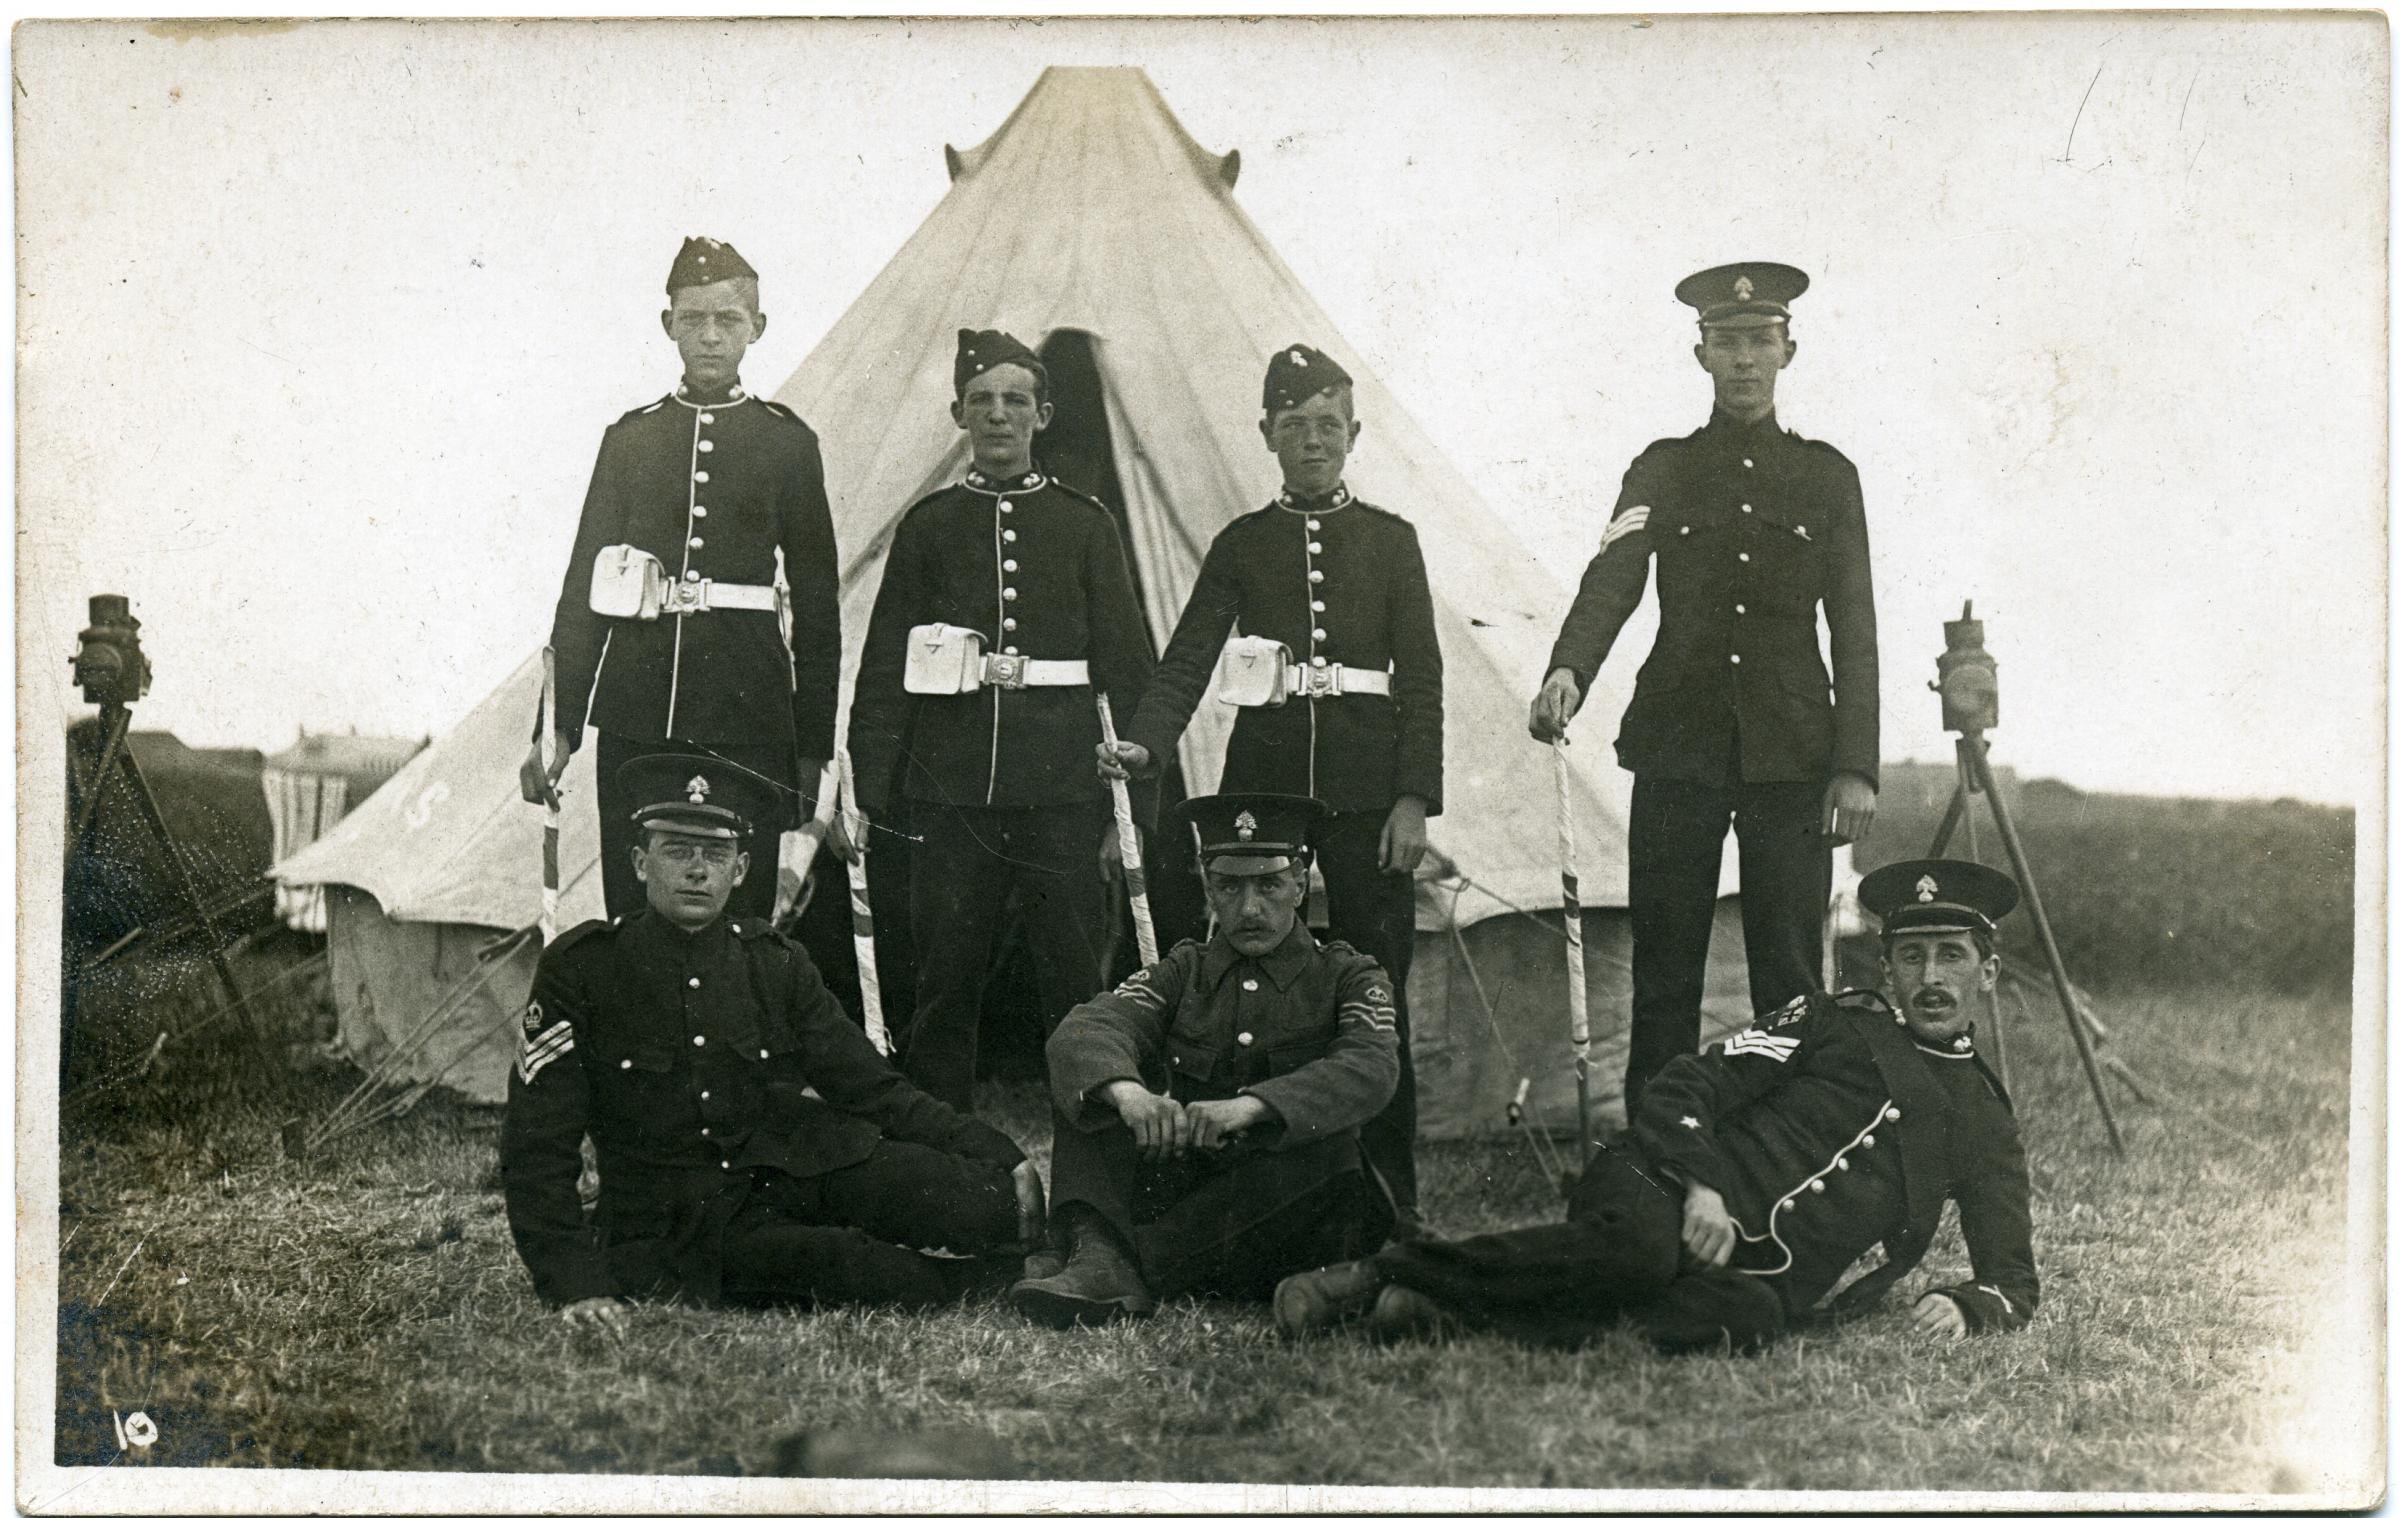 Contribution of the Commonwealth - The Royal Fusiliers in World War One